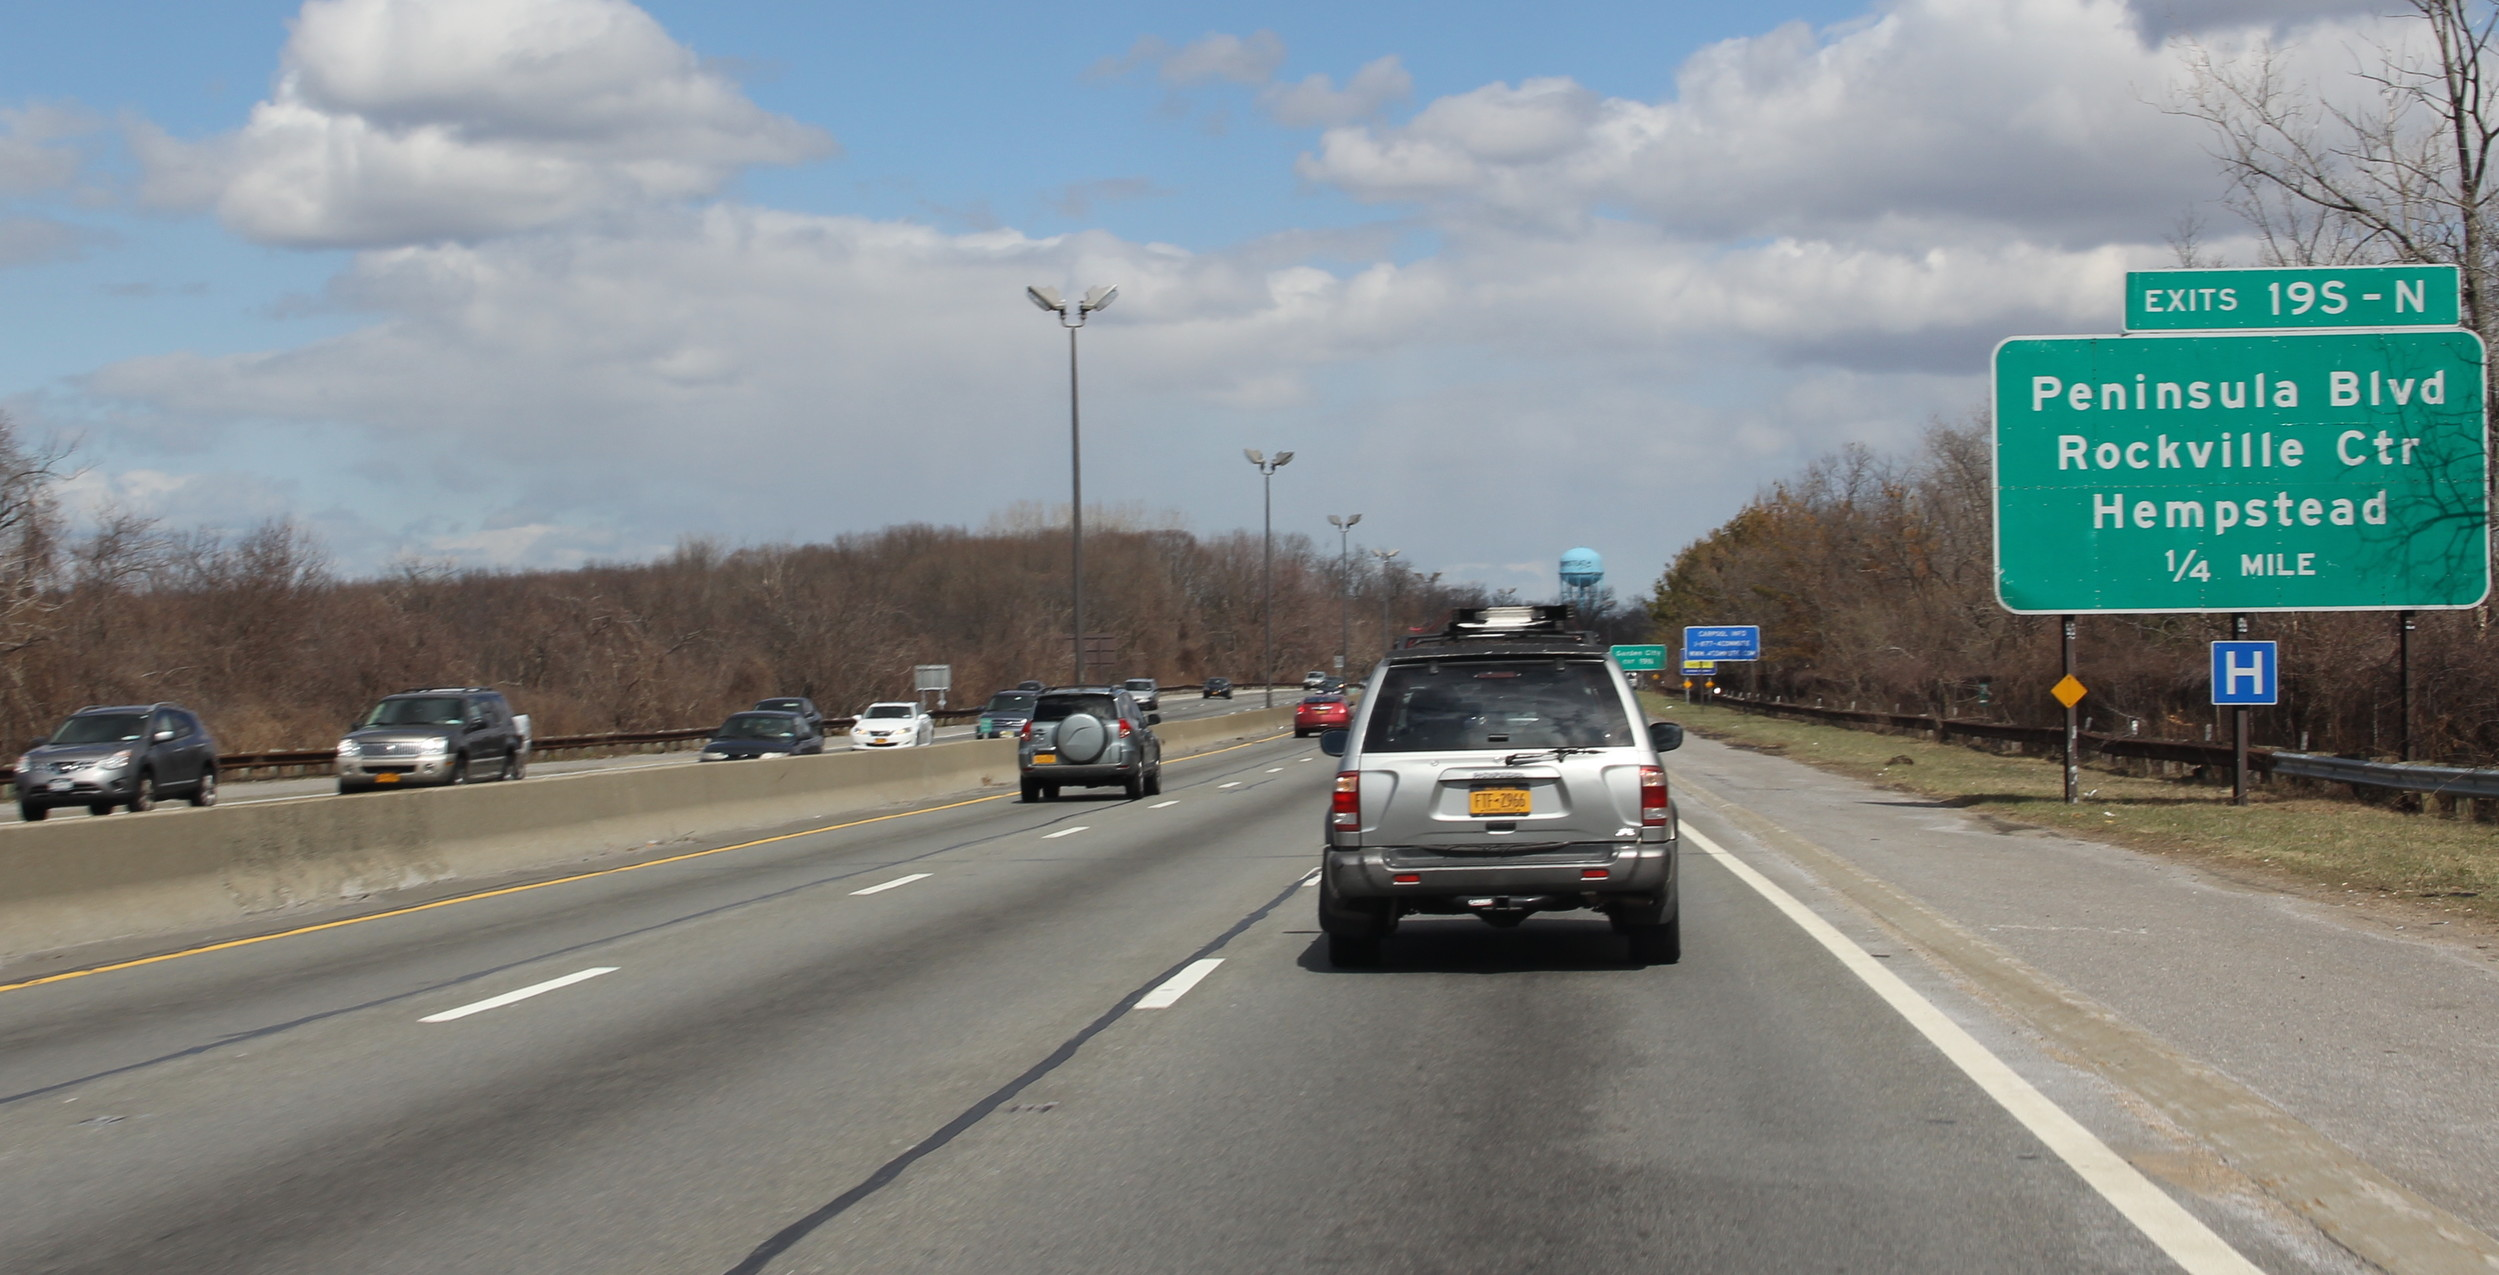 The incident happened on the eastbound side of the Southern State Parkway, just west of the Peninsula Boulevard exit beside Hempstead Lake State Park.